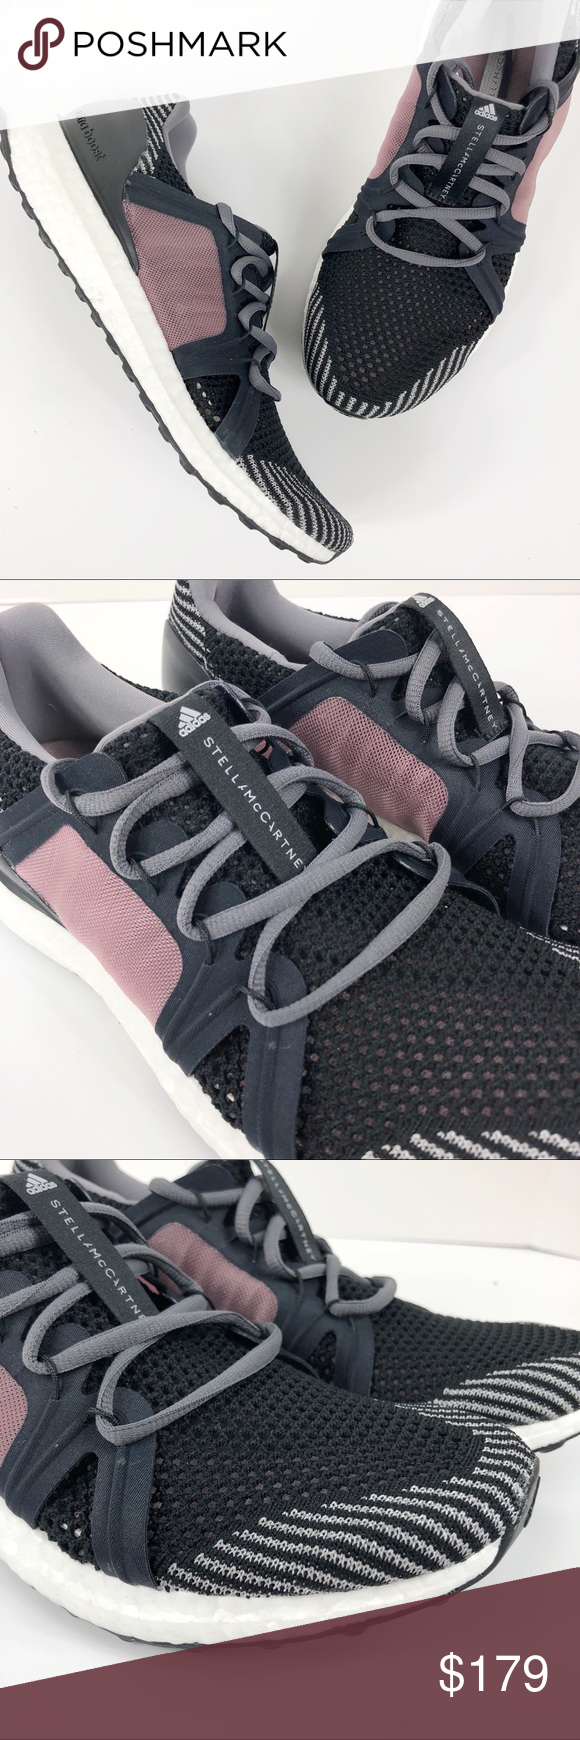 sports shoes 414c6 a4dea Womans in black, pink with mesh boost foam padding. Style  AQ0796 with  box Adidas by Stella McCartney Shoes Sneakers